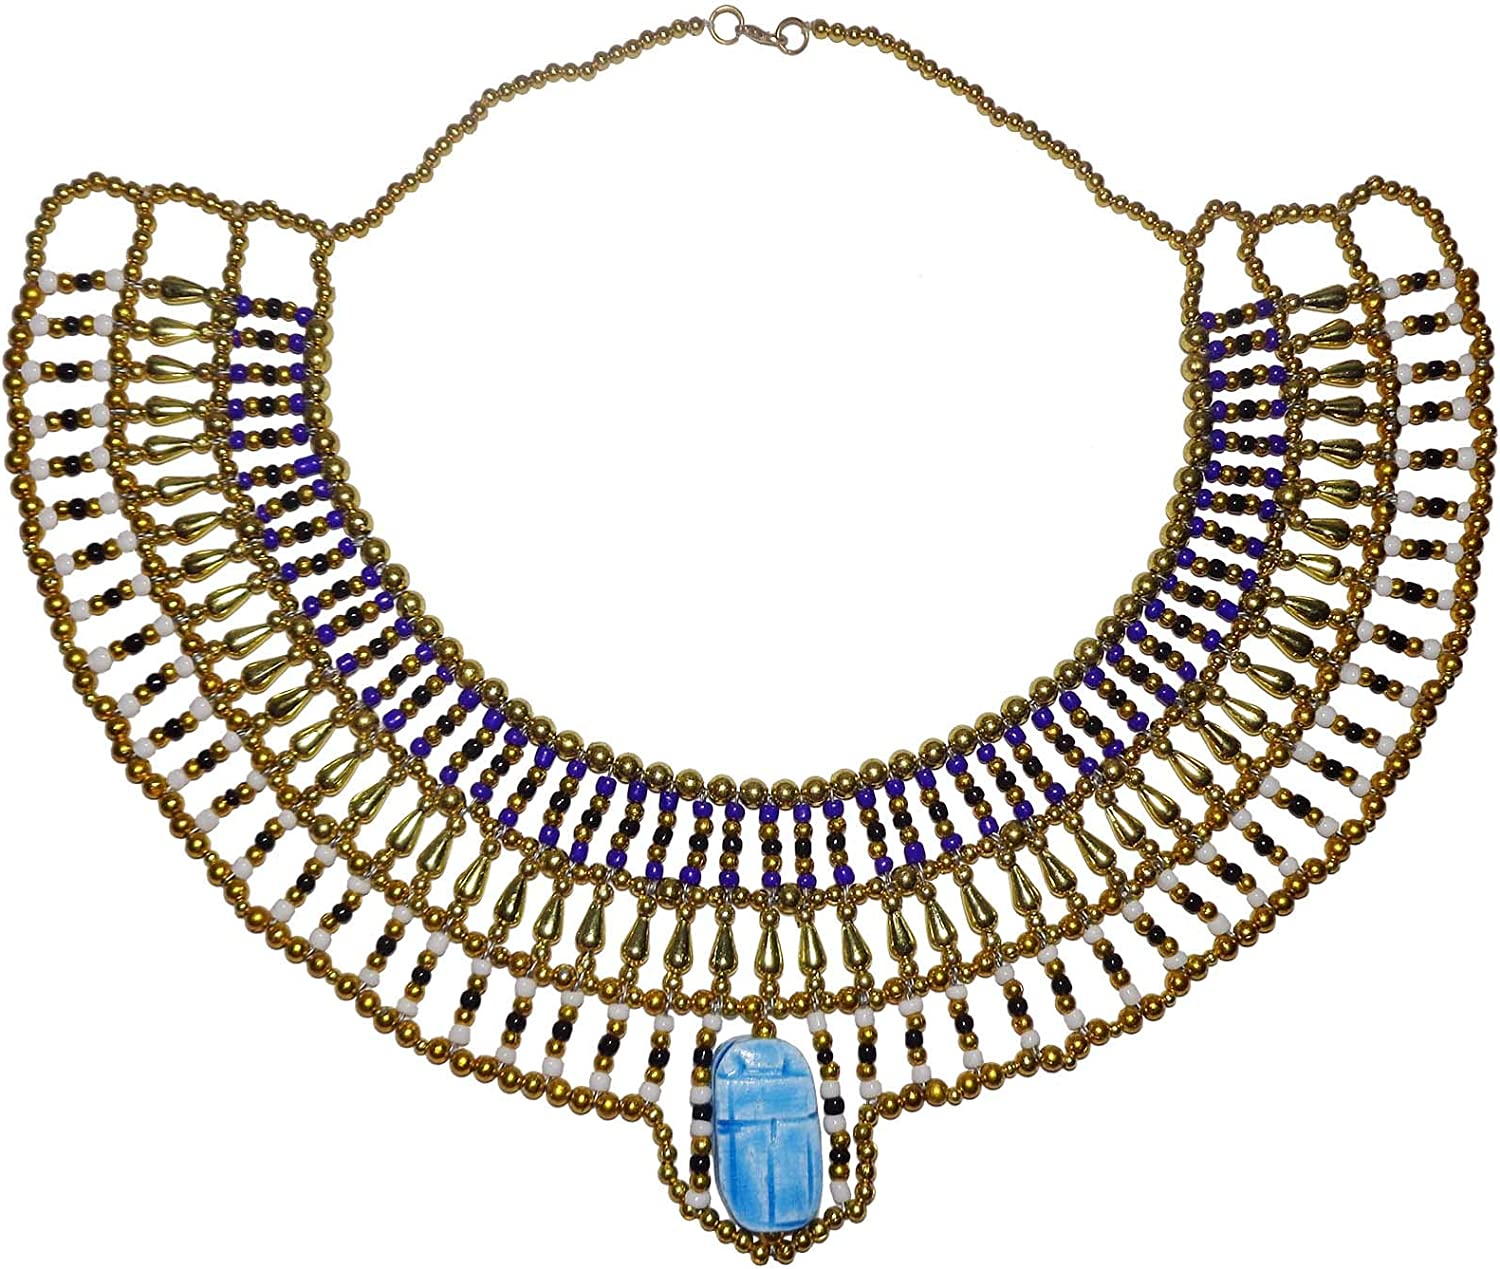 Egyptian Hand Made Multi Beaded Scarab Beetle Beads Cleopatra Nefertiti Queen 9.5 Necklace Collar Choker Pendant Christmas Halloween Ancient Egypt Pharaoh Costume Accessory Jewelry Belly Dance 234